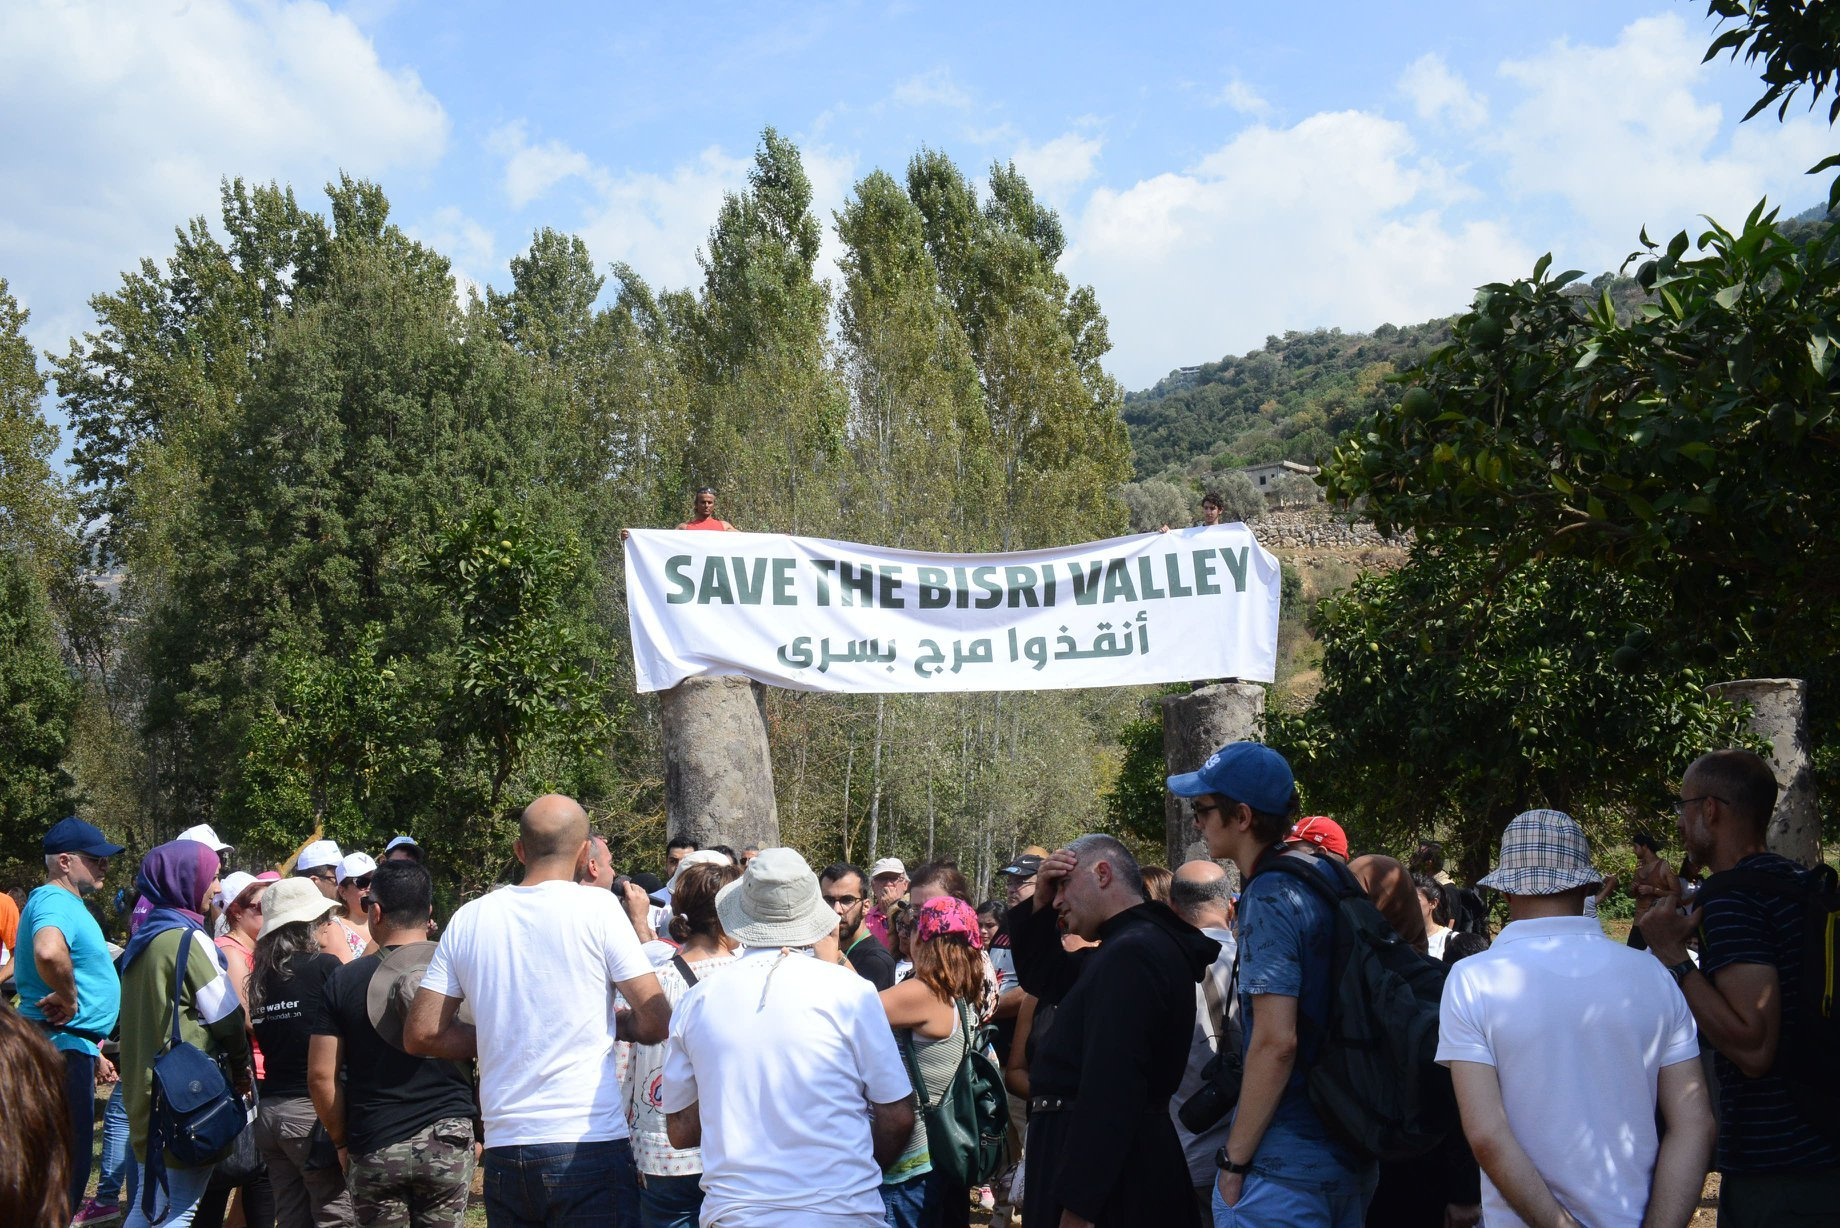 Save the Bisri Valley campaign hiking tour